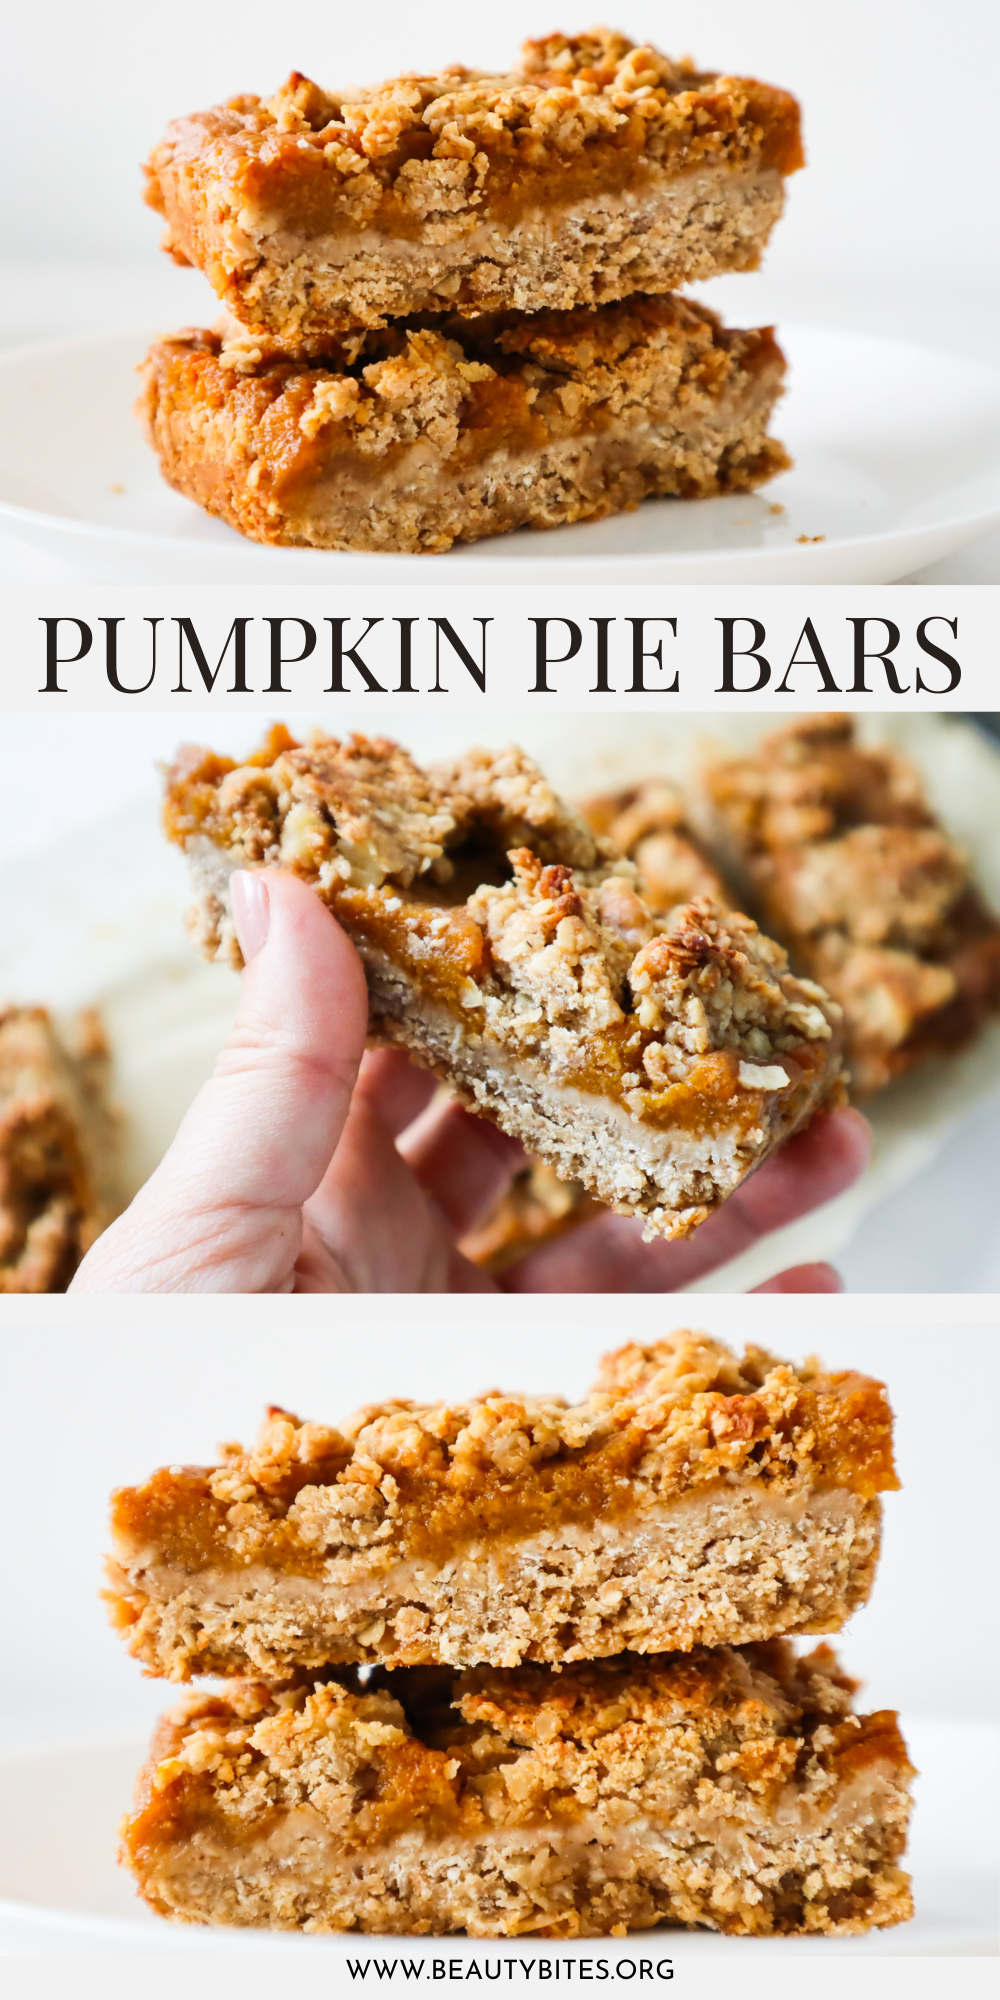 Easy vegan pumpkin pie bars! These healthy pumpkin bars are a delicious pumpkin recipe that you can make with simple ingredients like oats, pumpkin puree and coconut oil. The dessert for this pumpkin dessert is made with oats and the entire recipe is gluten free and dairy free!